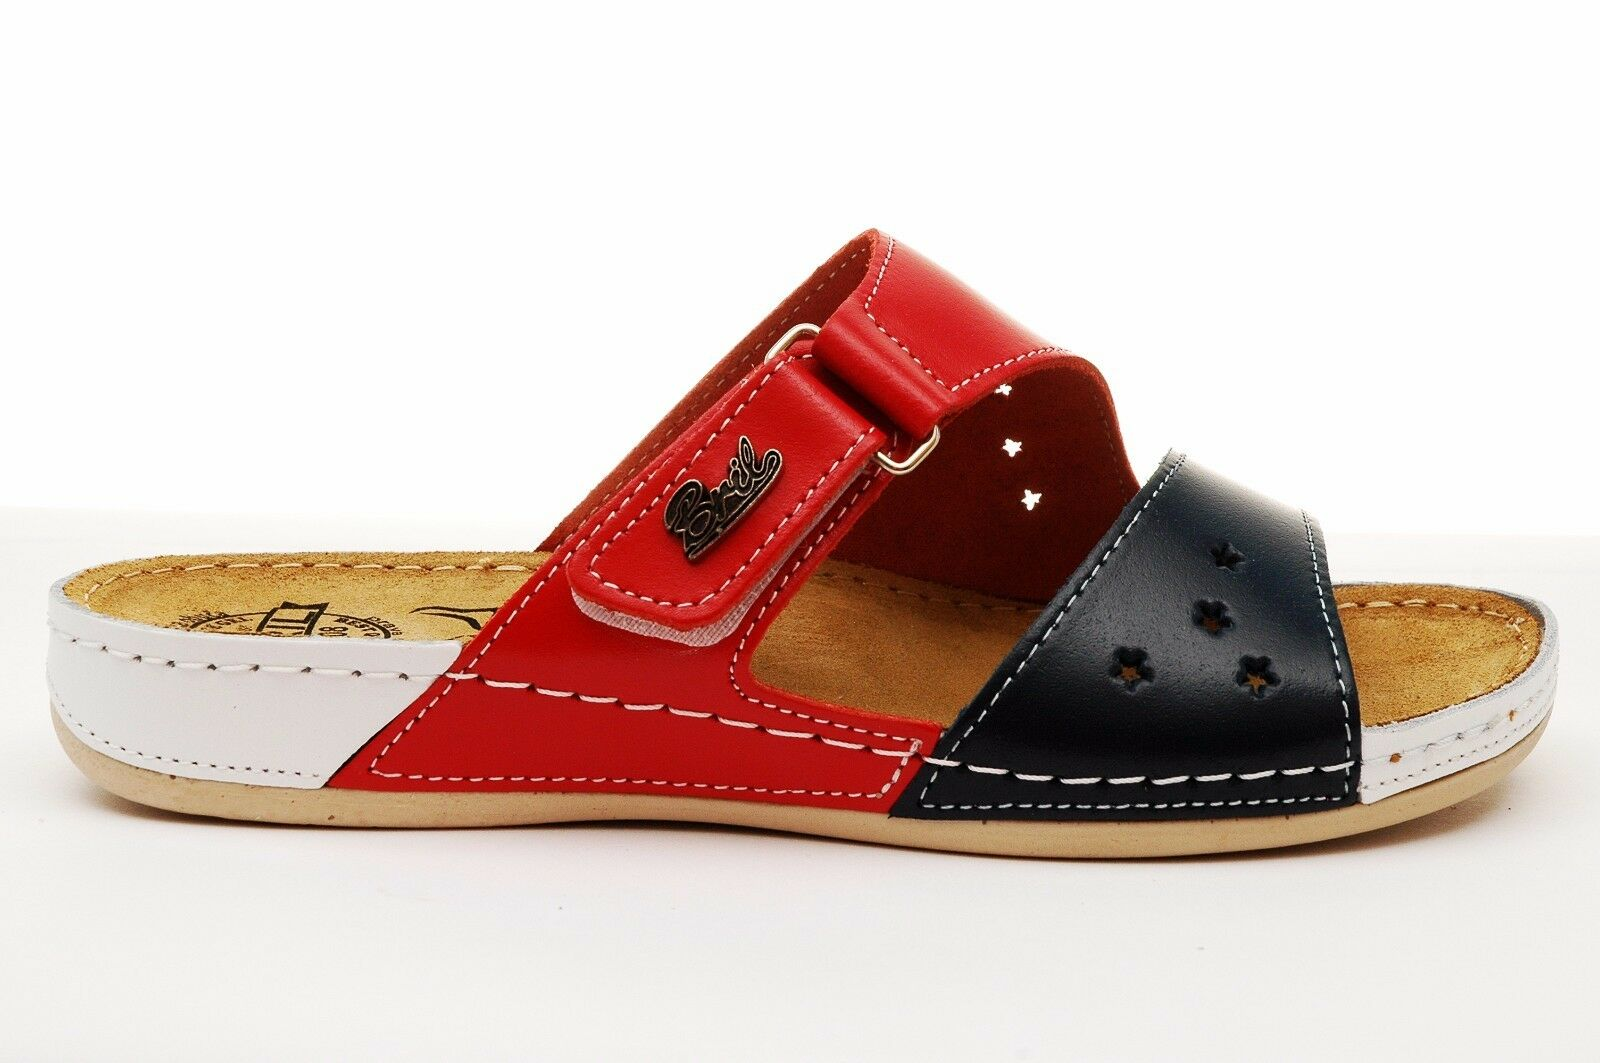 Dr Punto red BRIL Y71 Women Leather Slip On Clogs Sandals bluee-Red-White